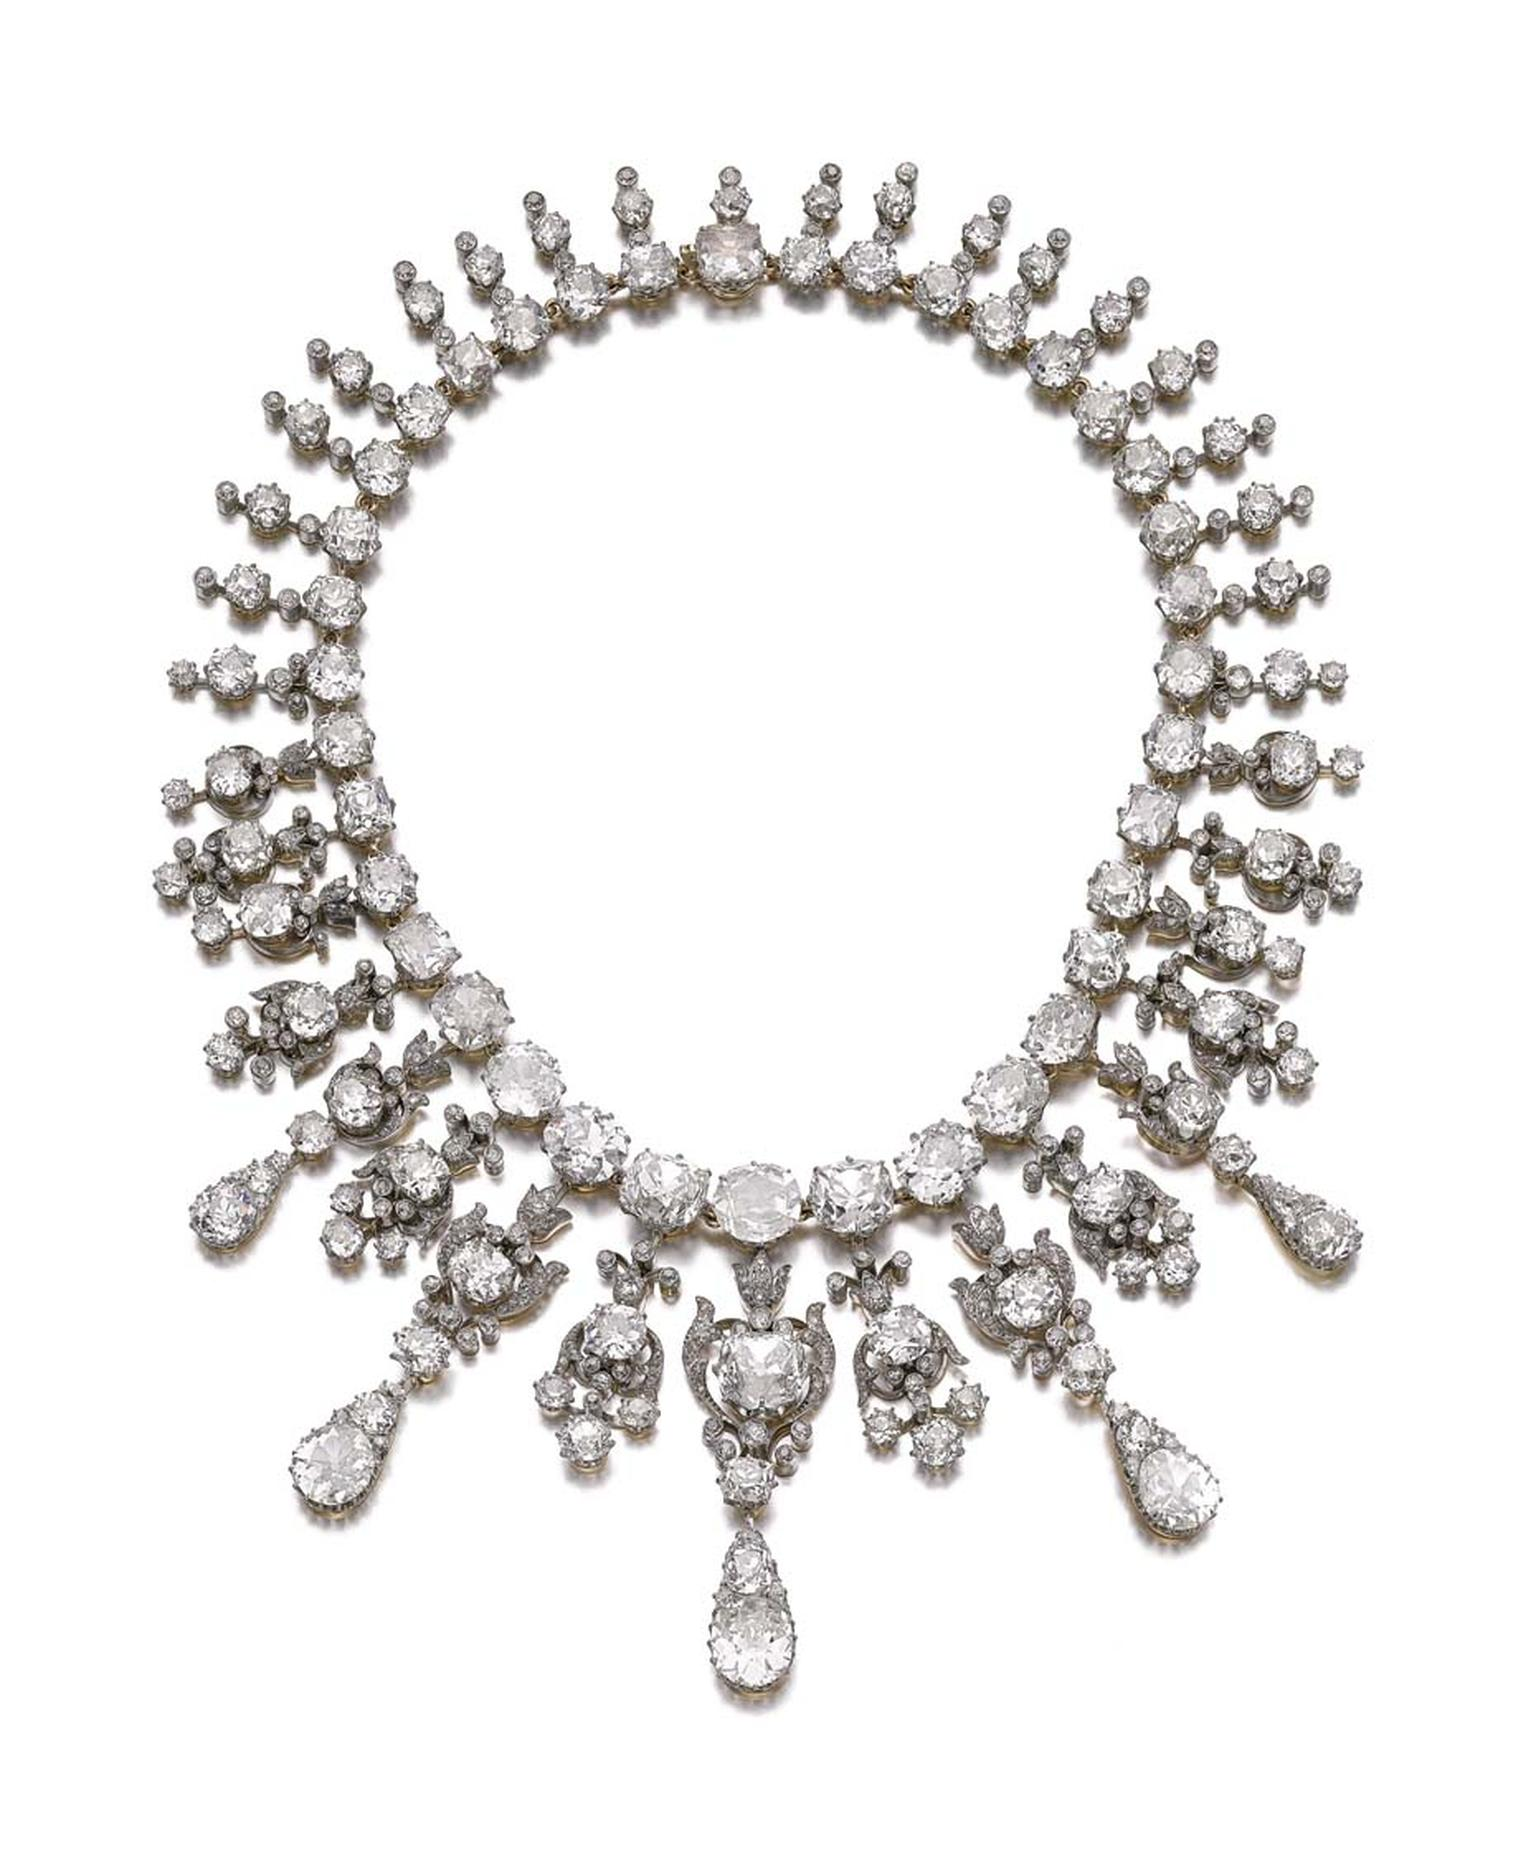 A diamond necklace from the collection of Flora Sassoon. Sold for CHF 1,085,000 (estimate: CHF 360,000-625,000)